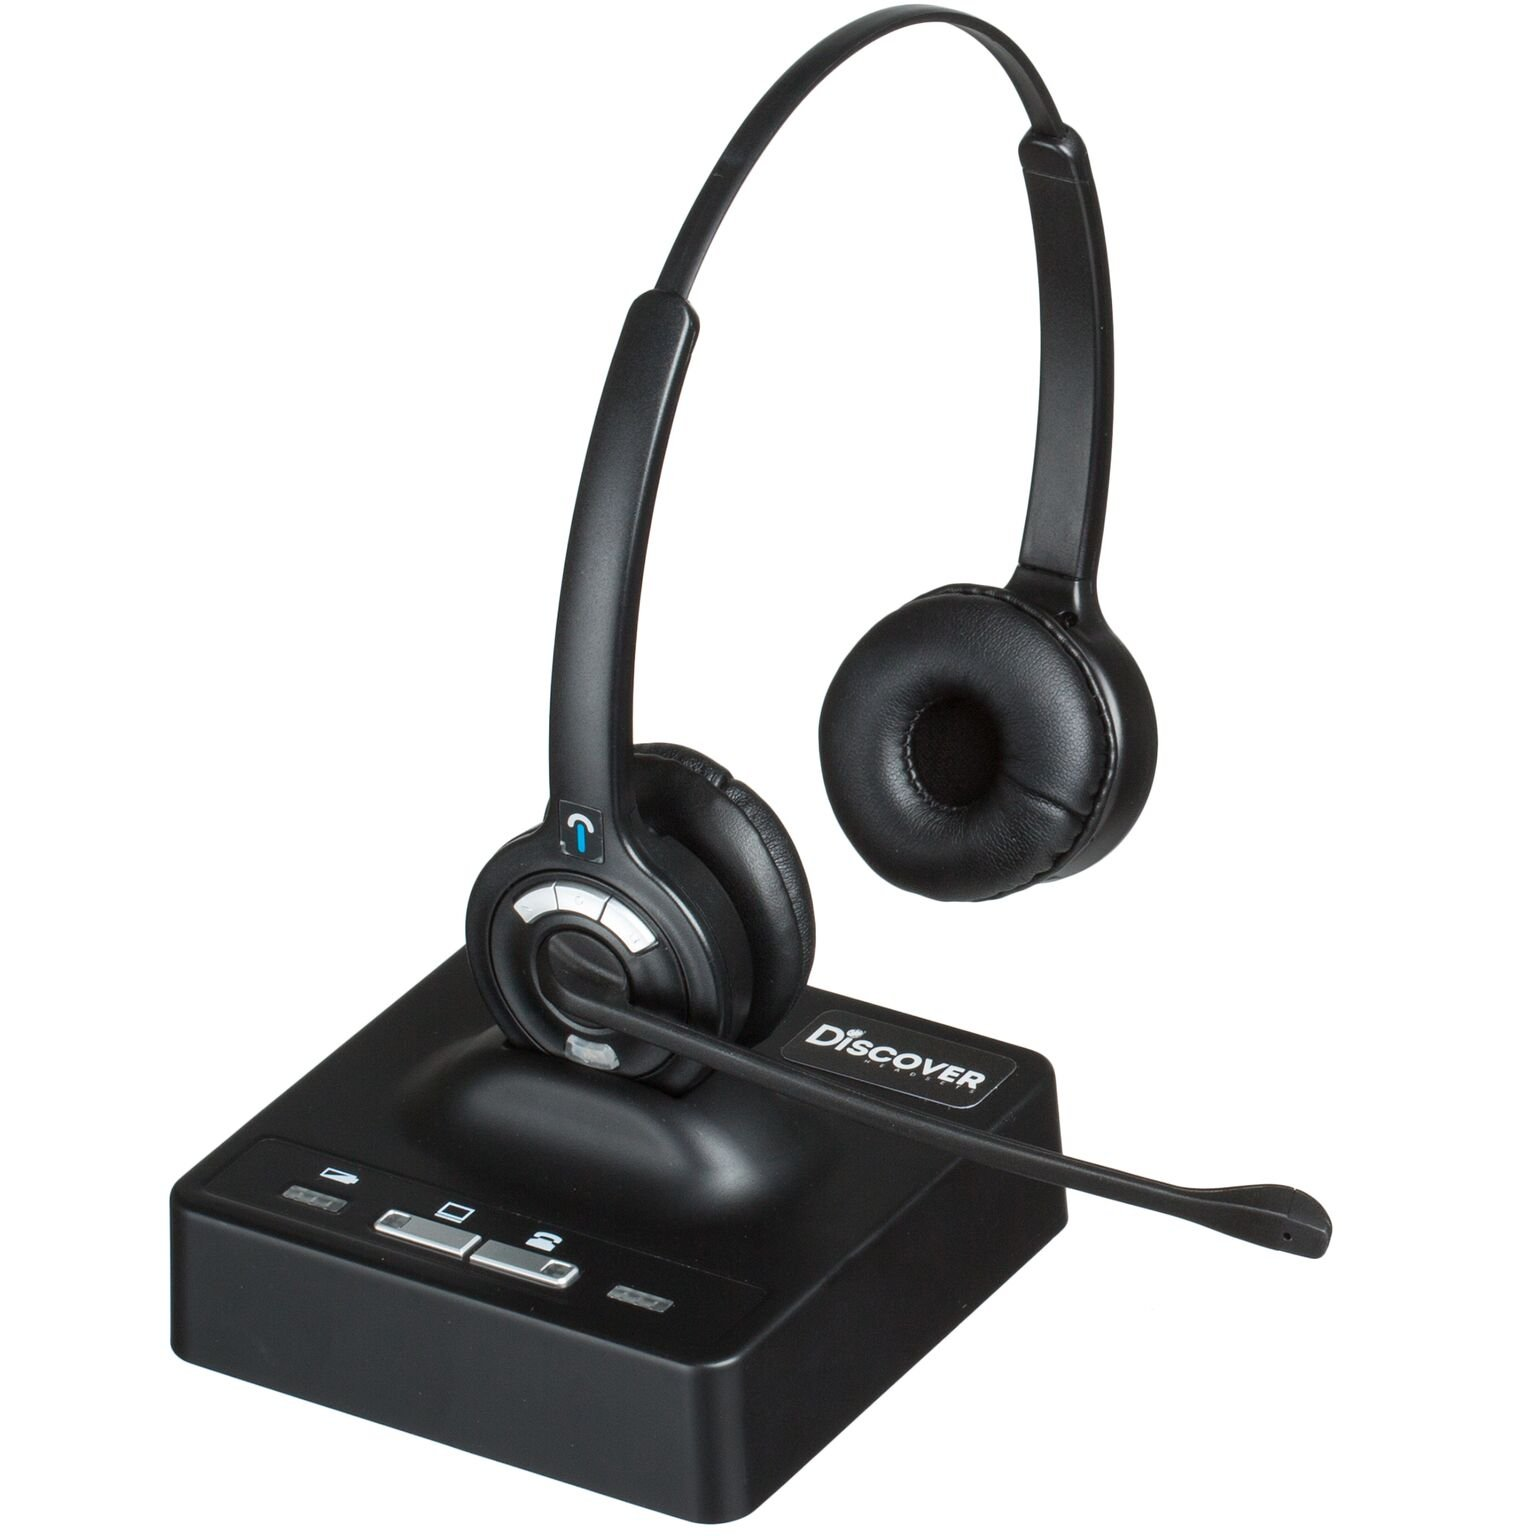 Amazon Com Discover D902 Duo Long Range Wireless Office Headset System For Telephone And Computer Electronics